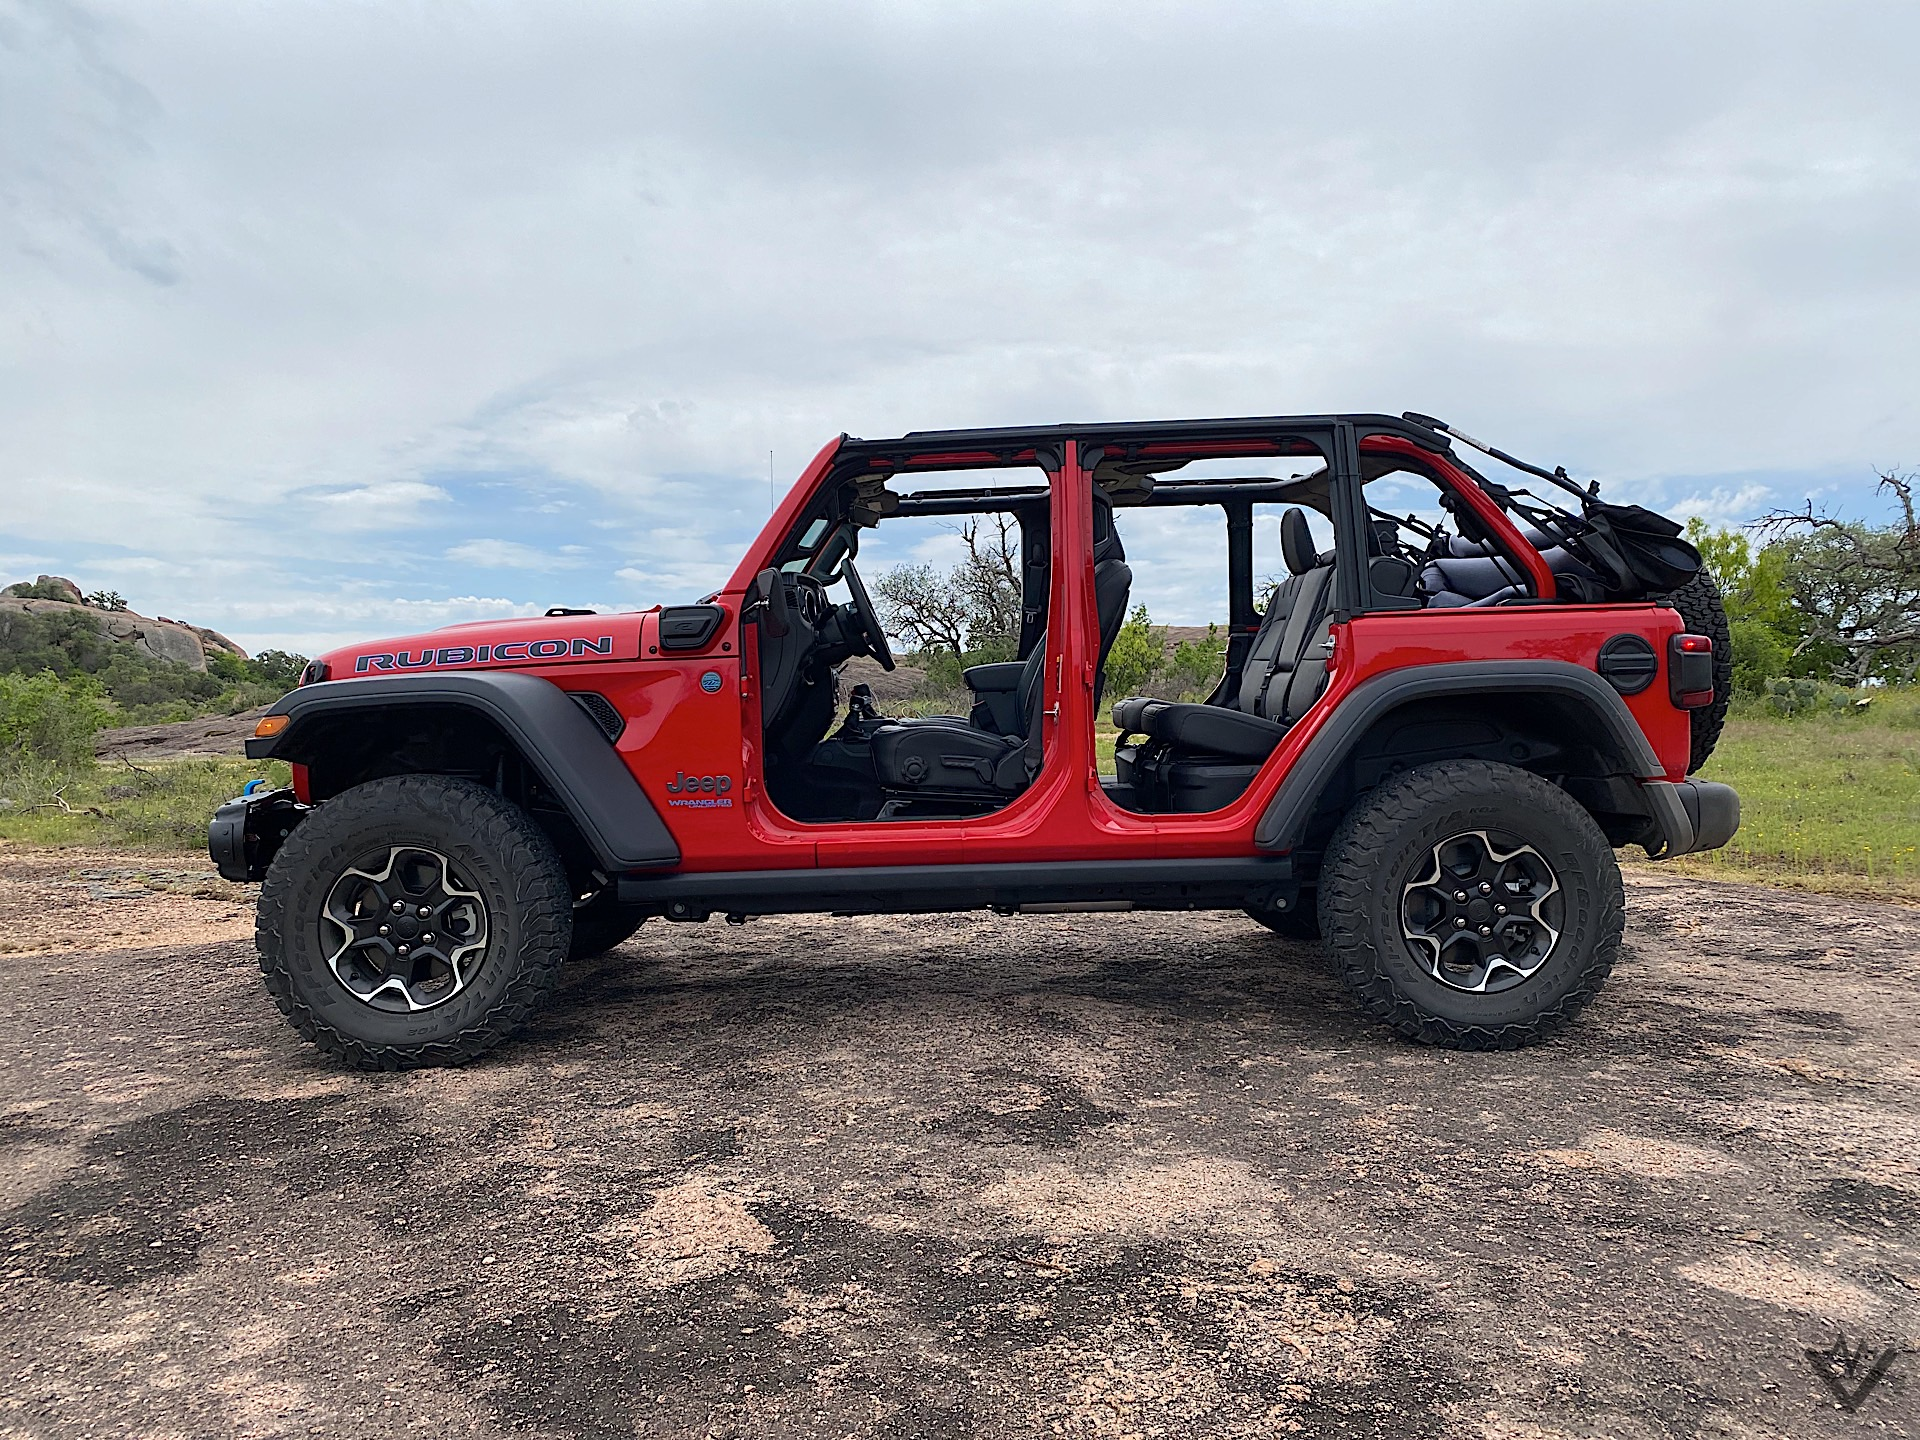 2021 Jeep Wrangler 4xe first drive IMG 3159